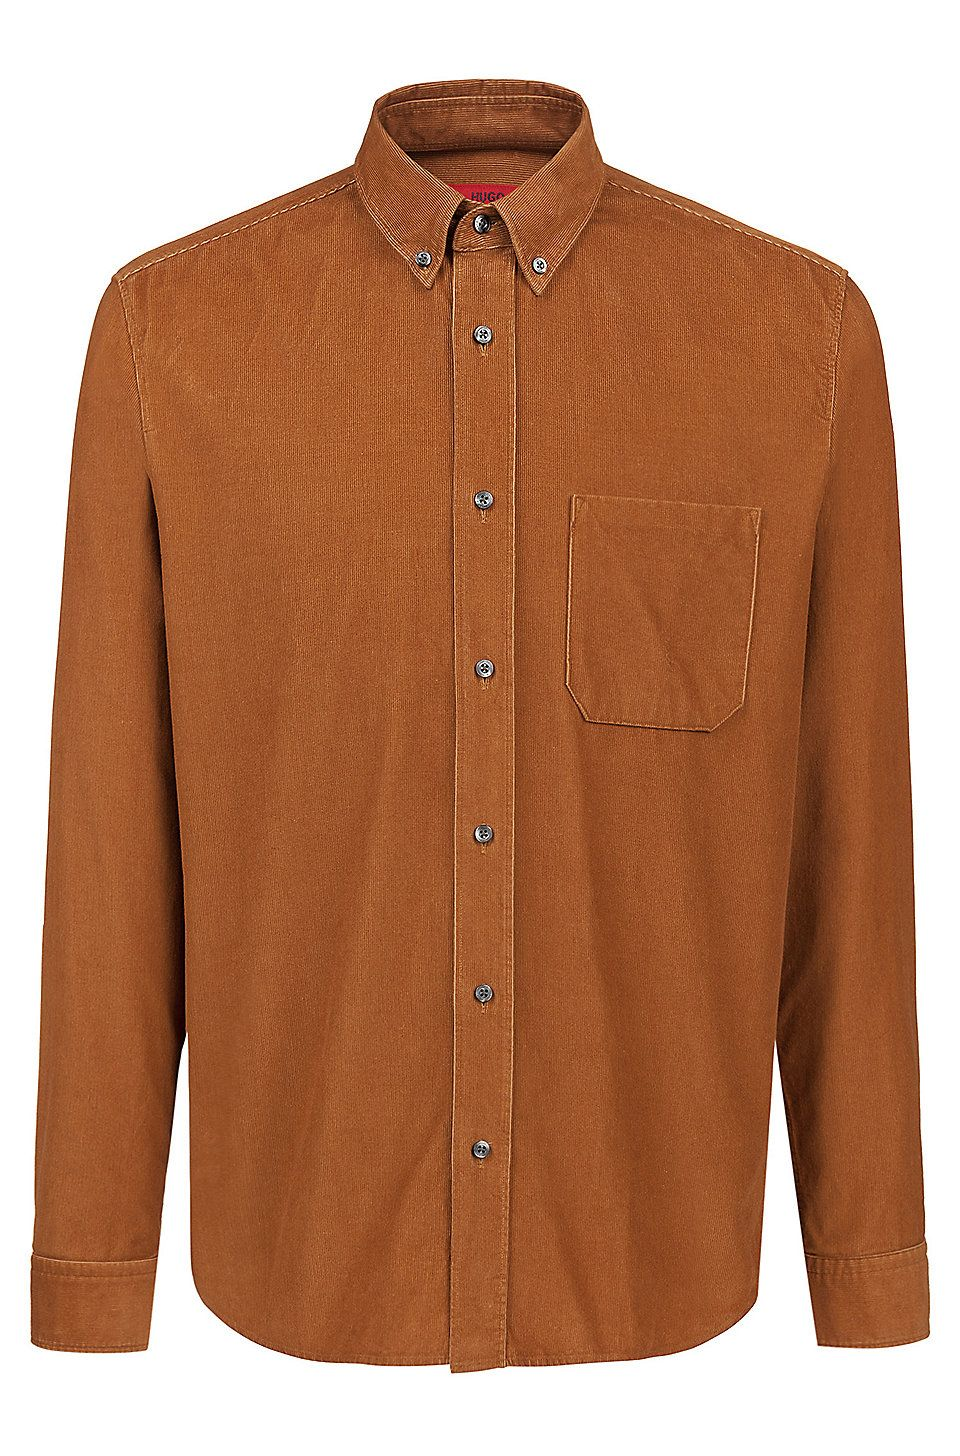 28797b34b7 HUGO BOSS Relaxed-fit button-down shirt in baby corduroy - Brown Casual  Shirts from HUGO for Men in the official HUGO BOSS Online Store free  shipping